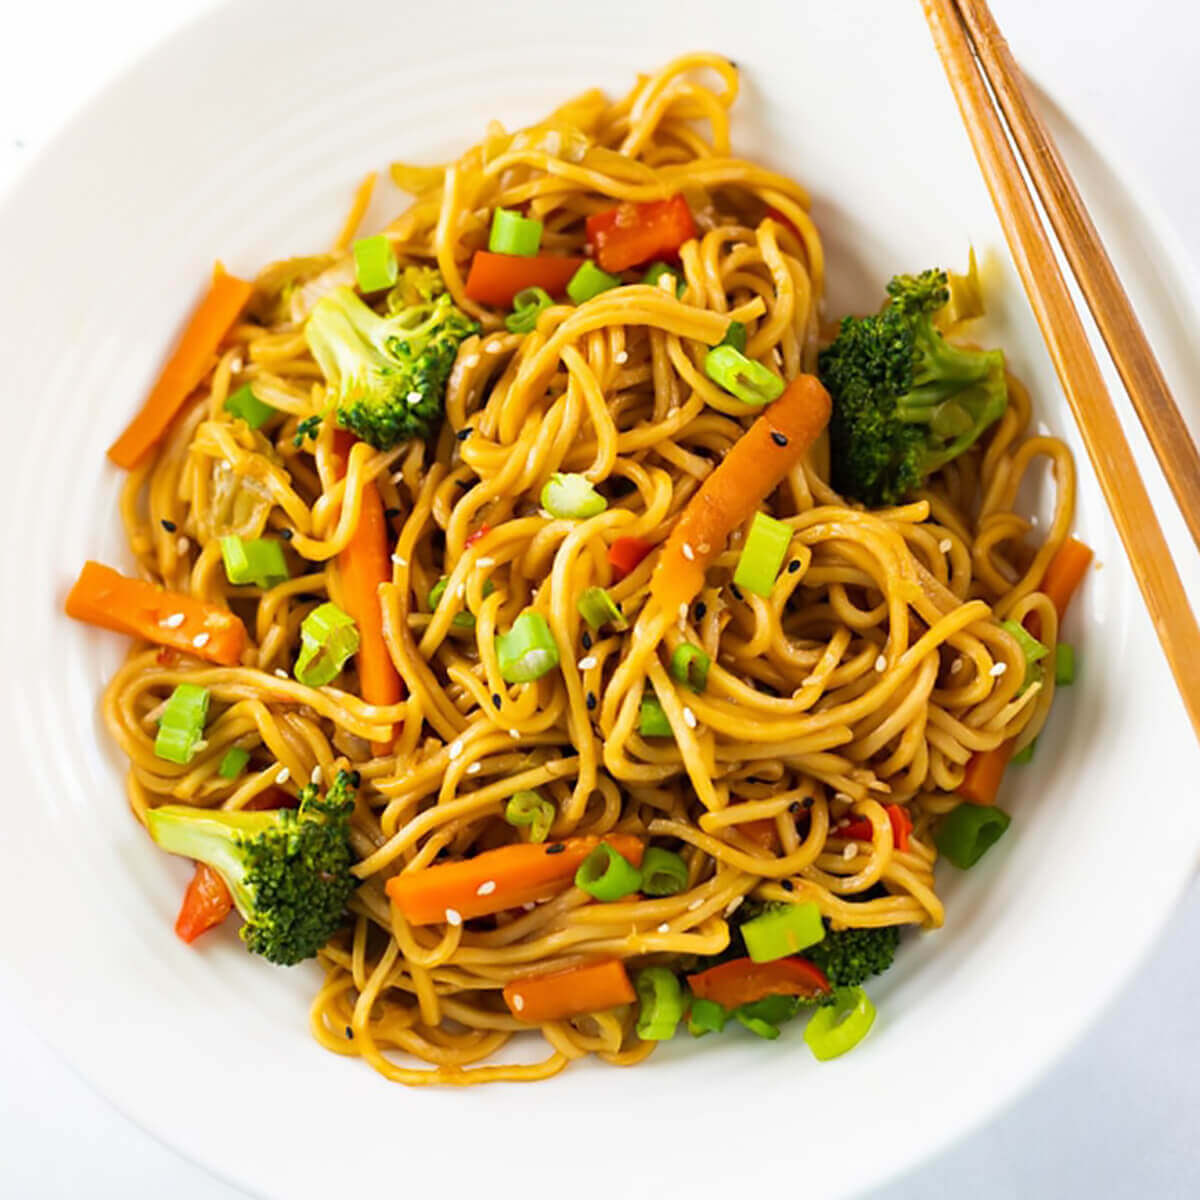 Vegetable lo mein served with chopsticks.